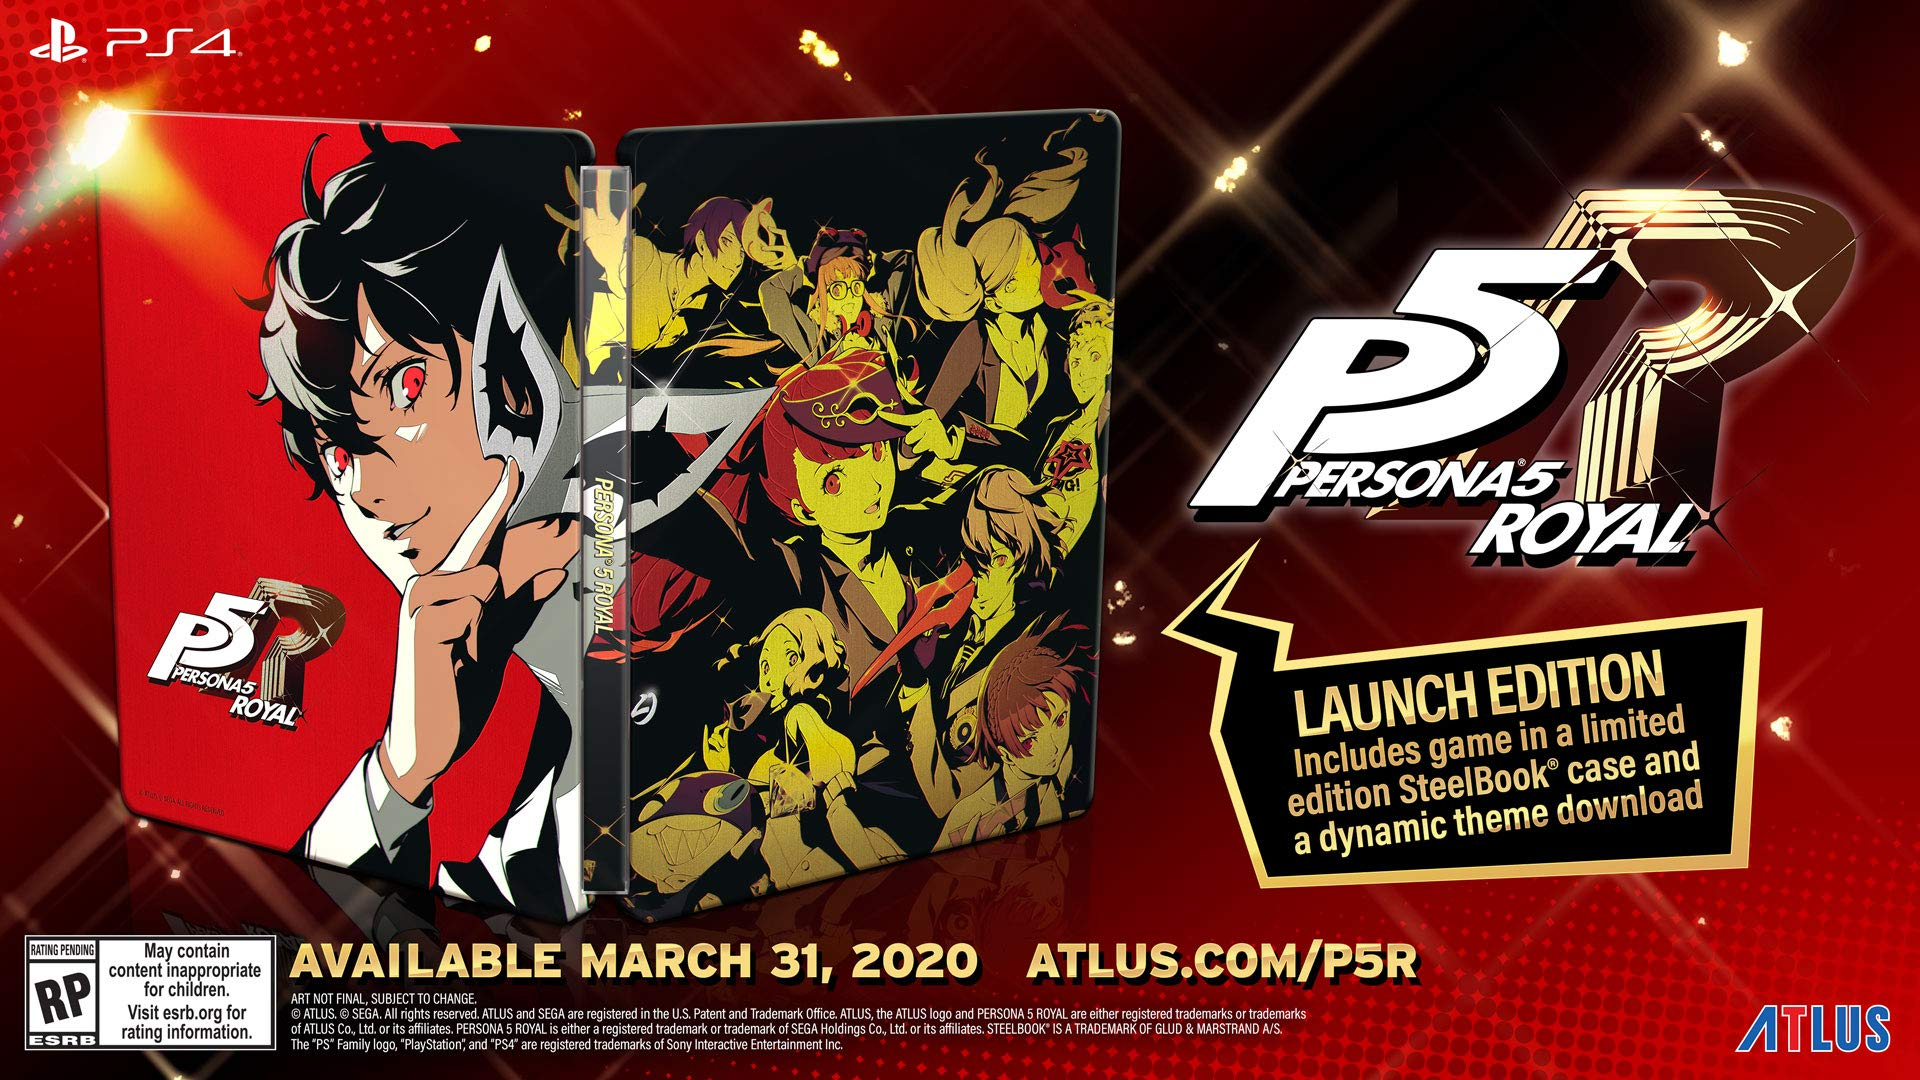 Ps4 Free Games March 2020.Persona 5 Royal Launches March 31 2020 In The West Gematsu